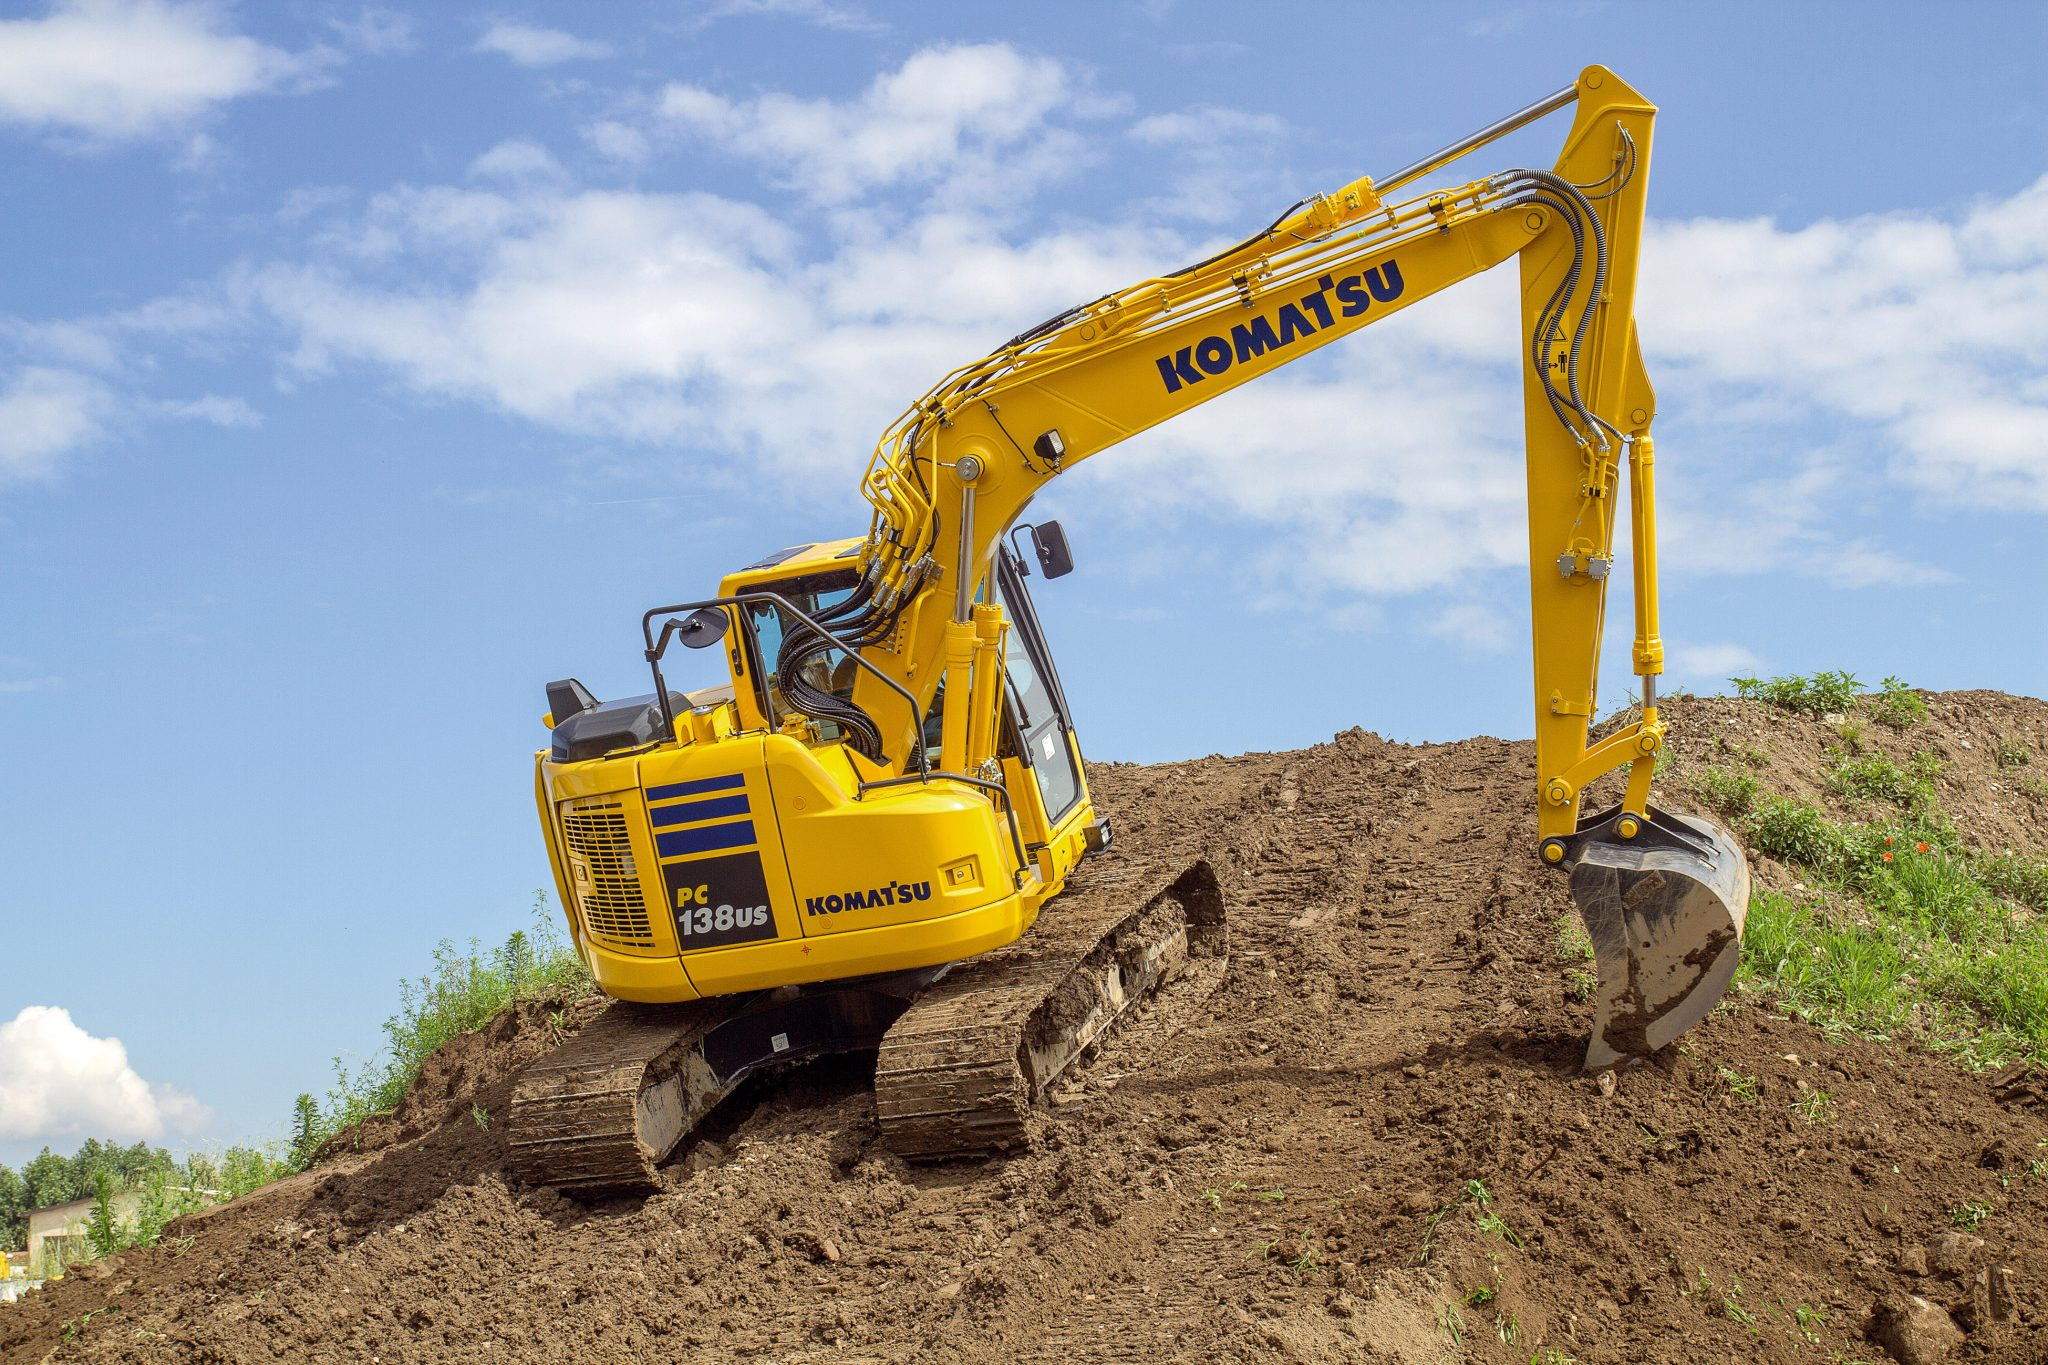 13 Ton Zero Swing Excavator Hire from Ridgway Rentals Ltd